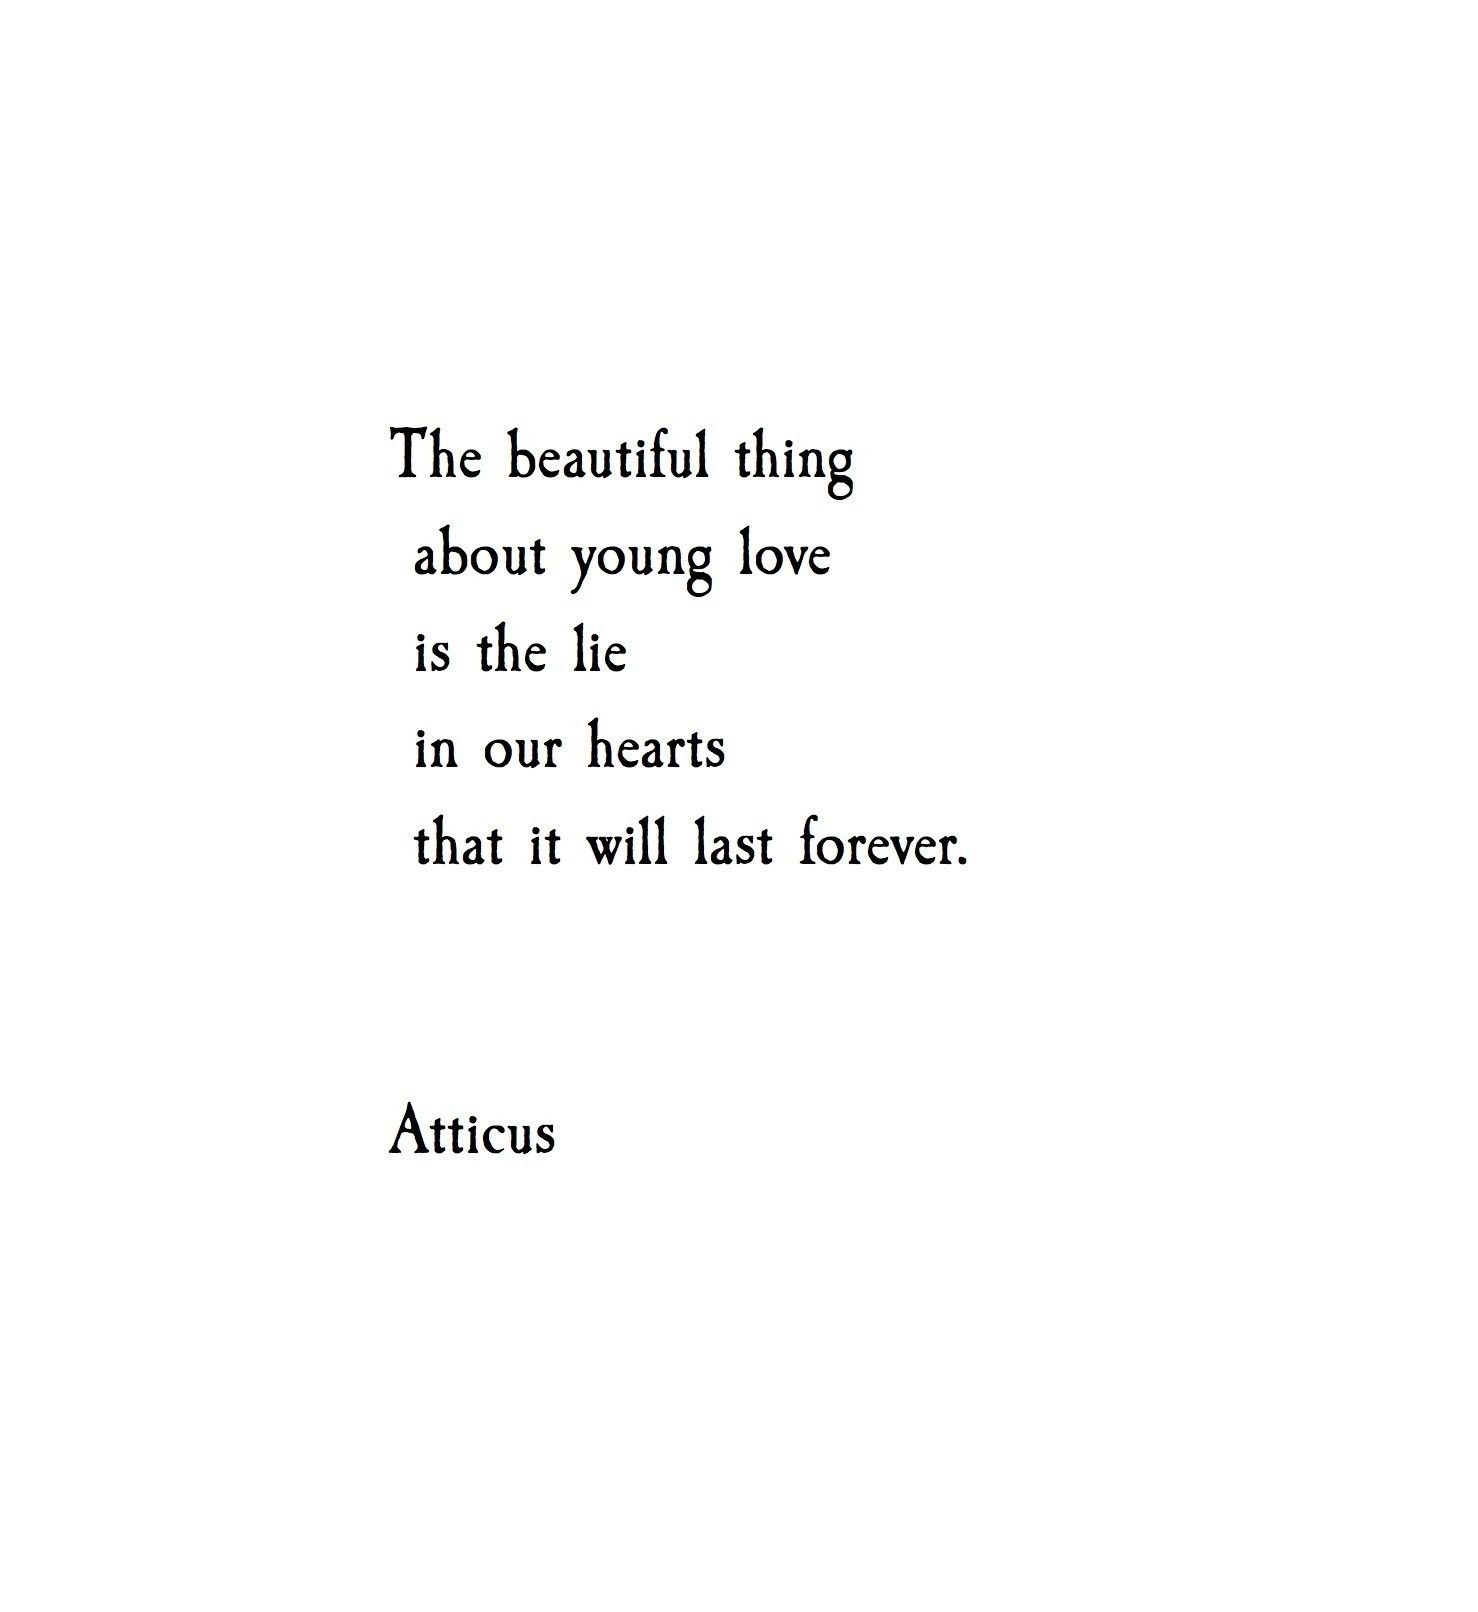 'Young Love' @Atticuspoetry #Atticuspoetry #beautiful #atticus #poetry #love #hearts #forever